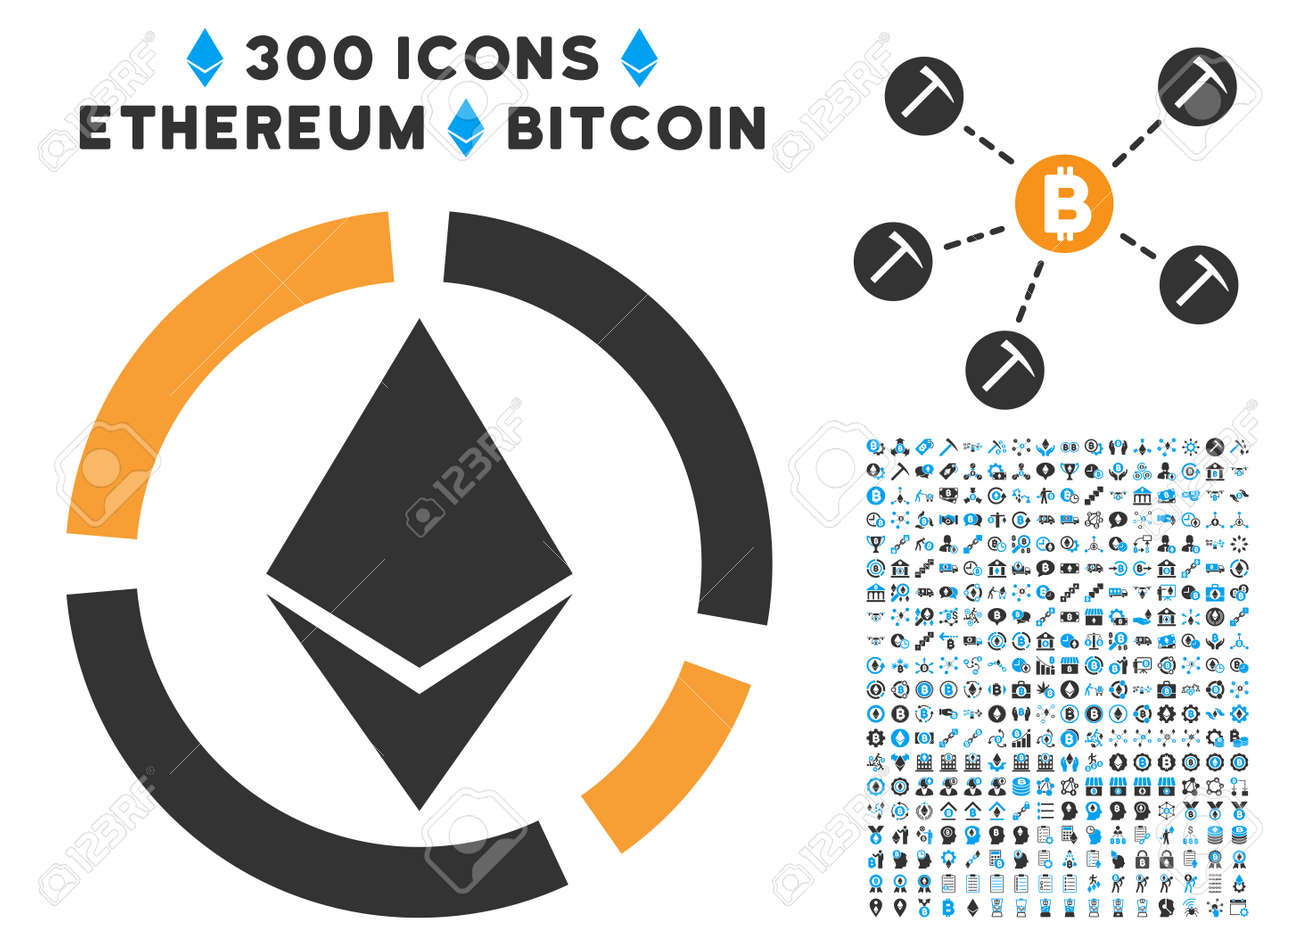 Ethereum Circle Diagram Icon With 300 Blockchain Cryptocurrency Smart Contract Graphic Icons